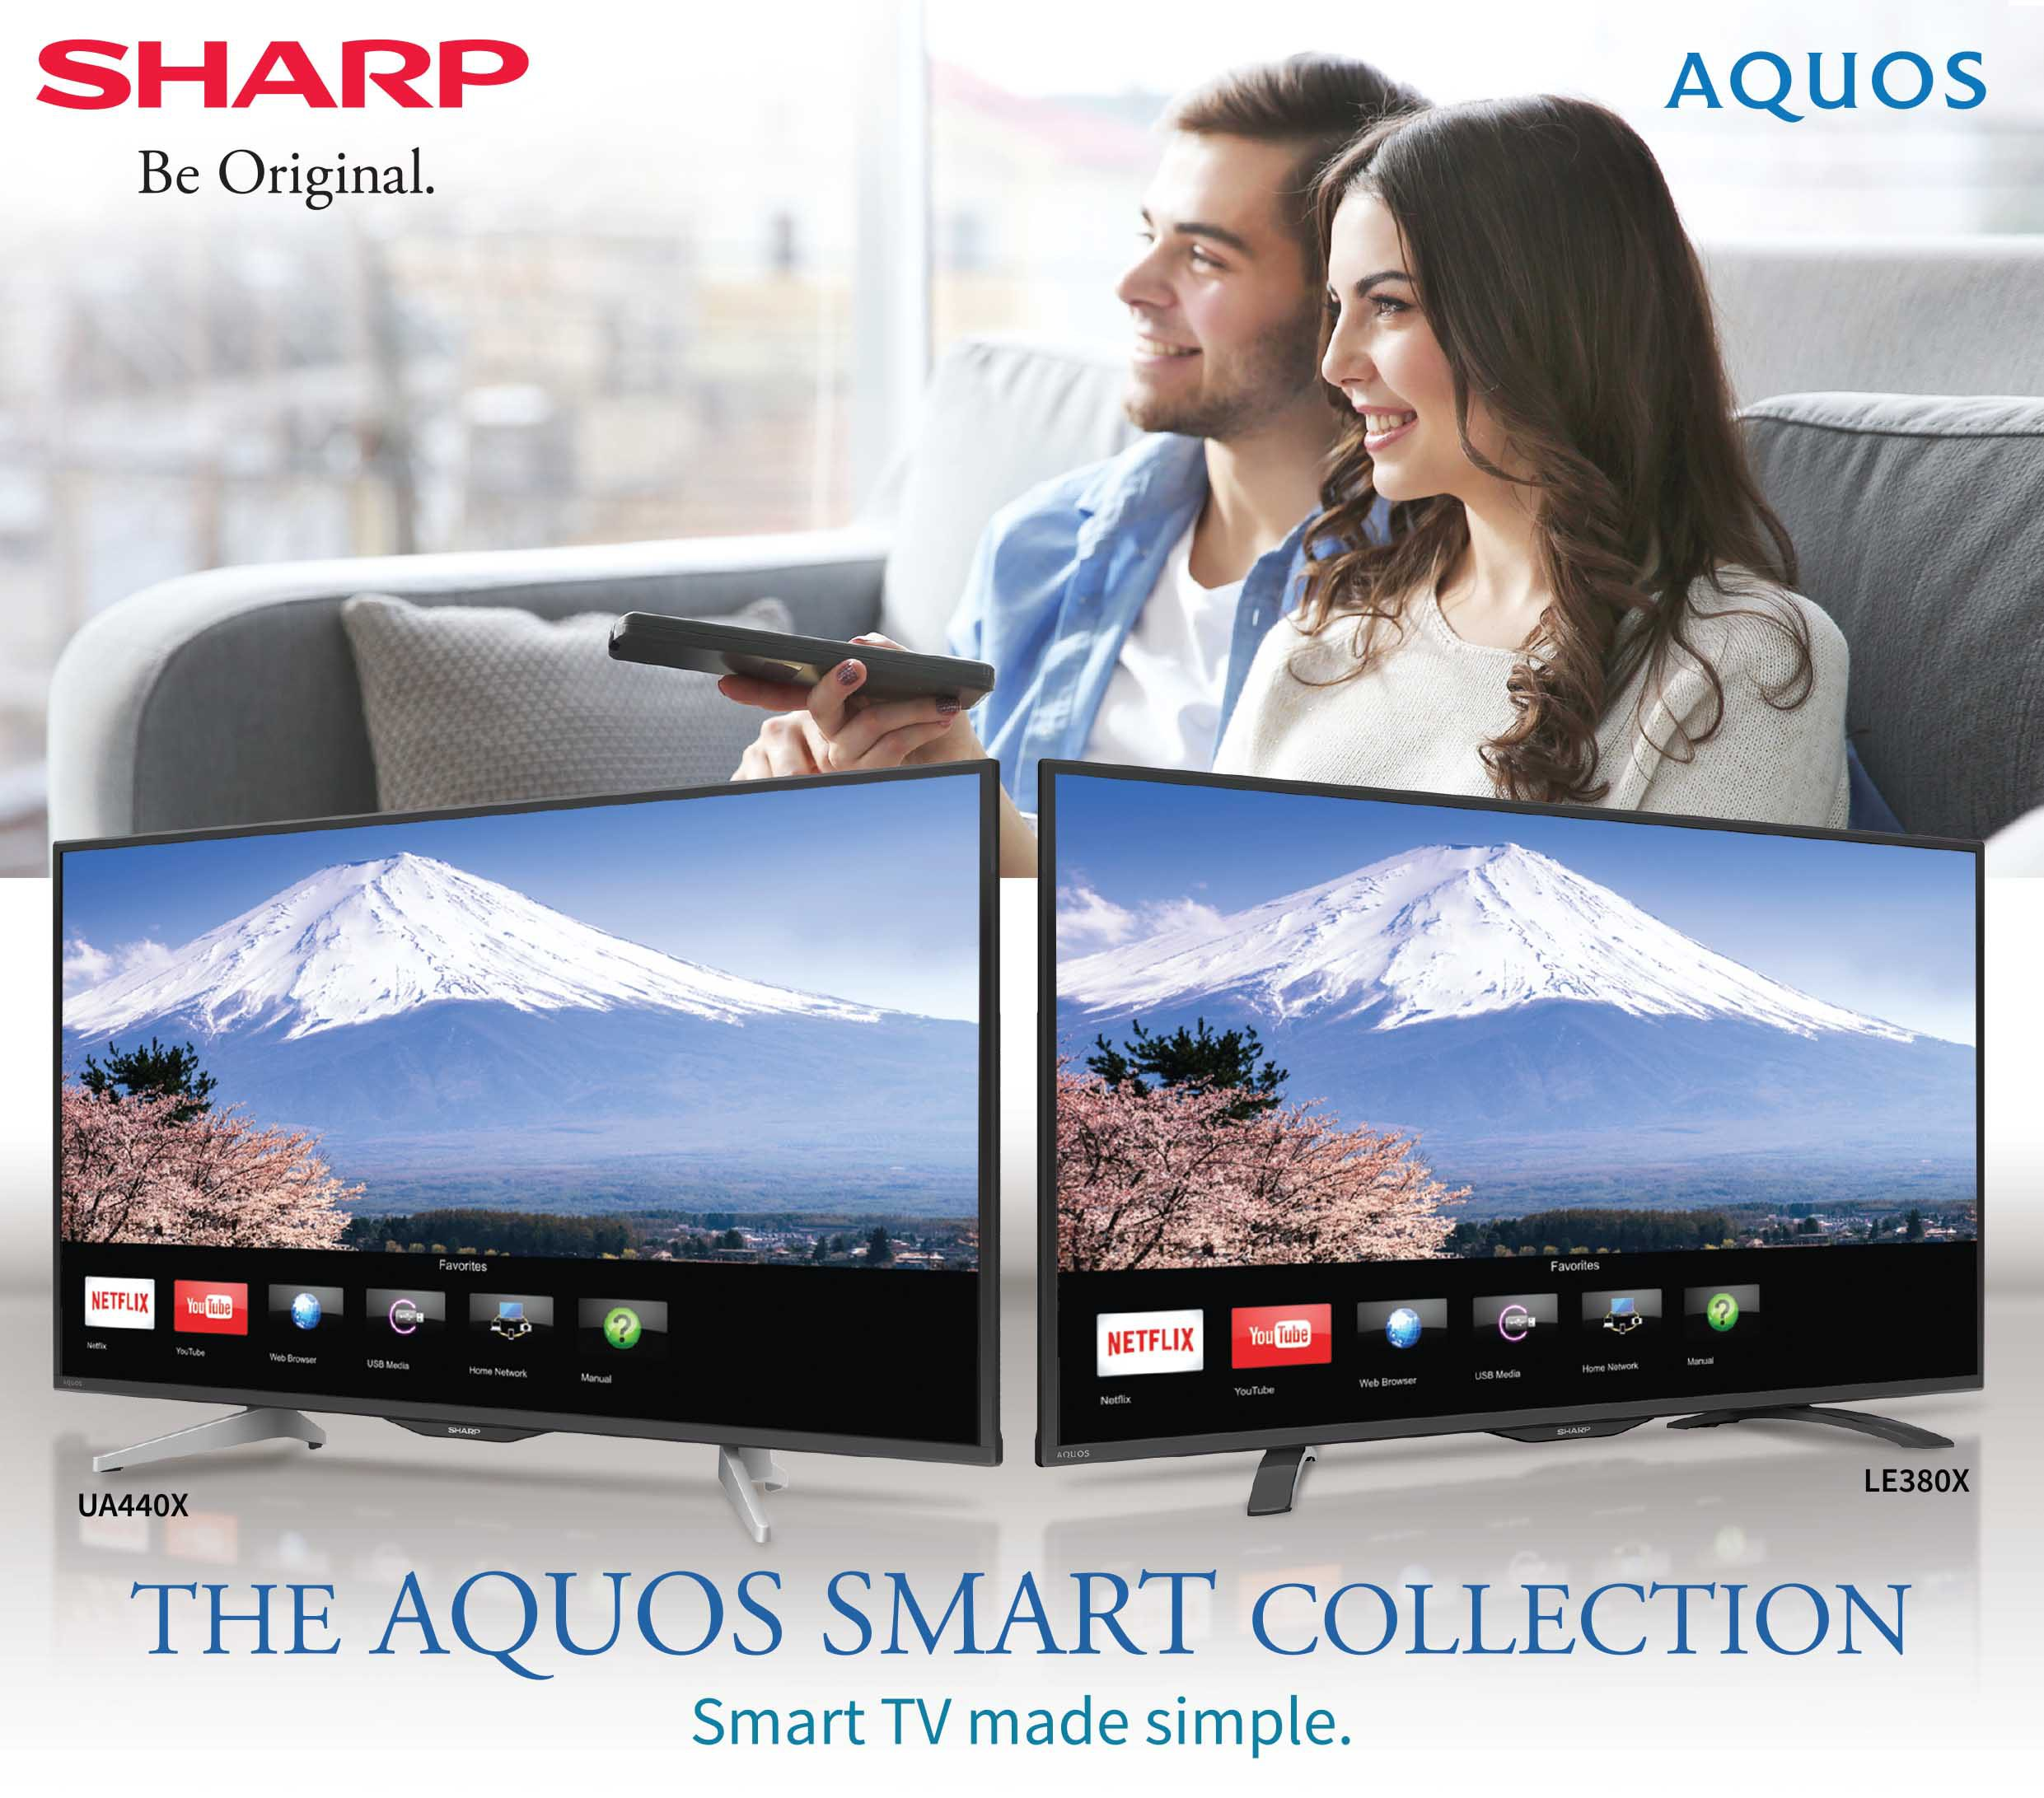 Introducing: Sharp's AQUOS Smart Collection | Philippine Primer